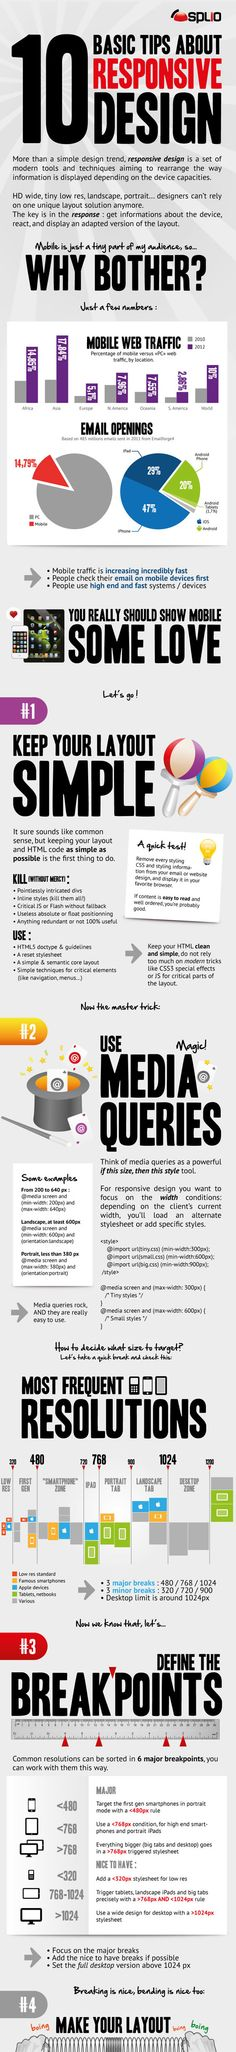 Basic Tips About Responsive Web Design (Infographic